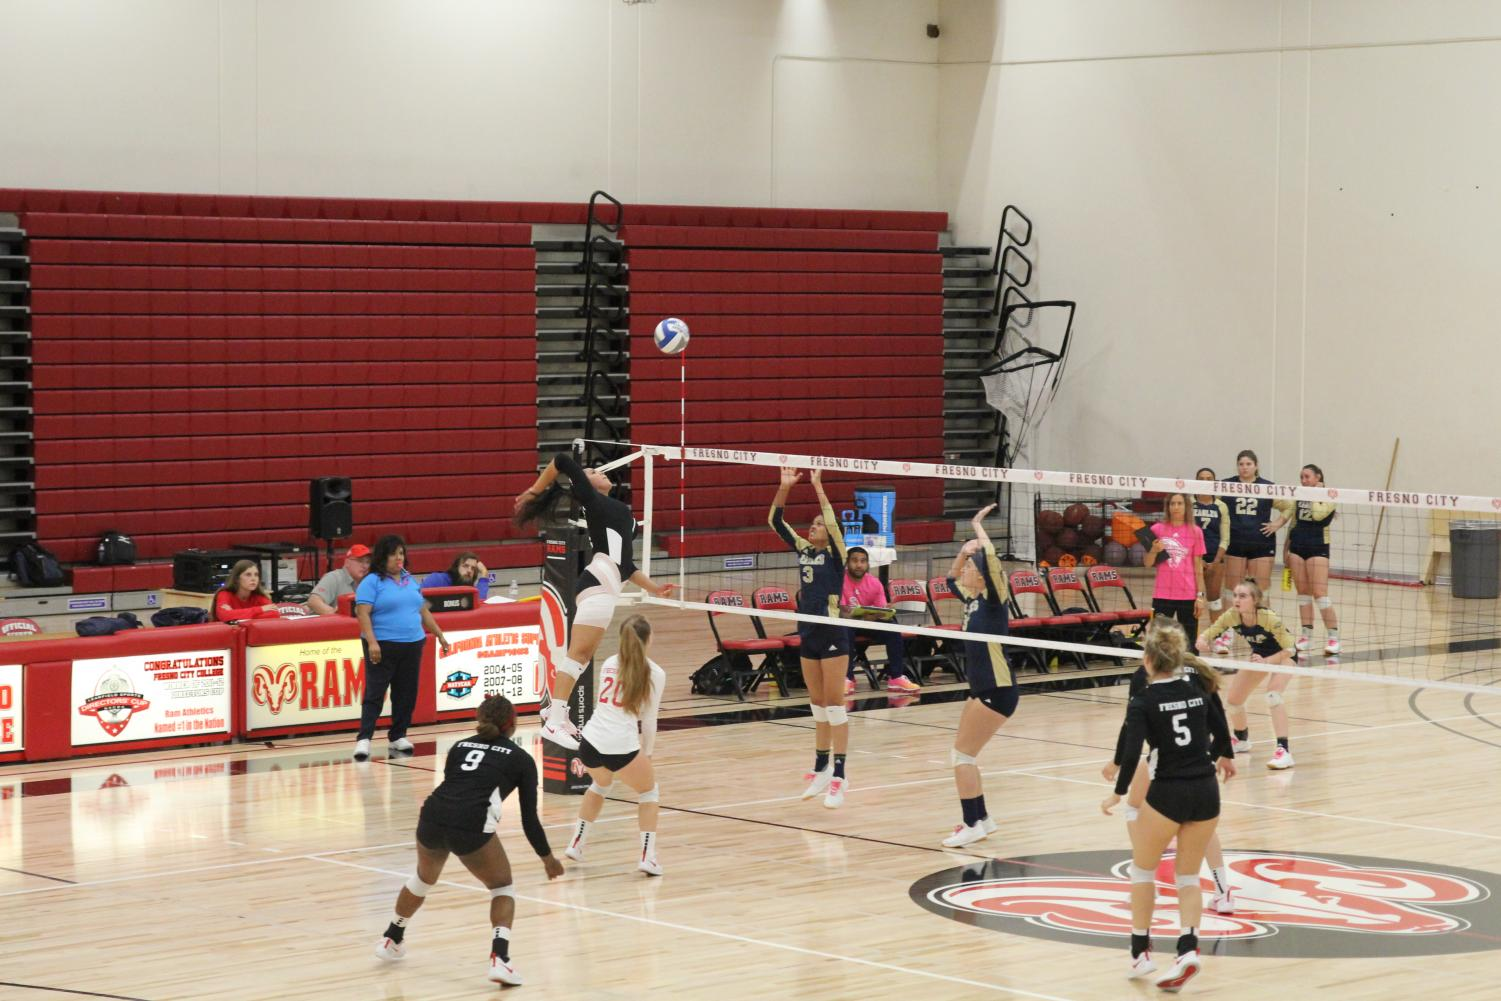 Sophomore pin hitter Marina Gonzalez goes up for the kill against the West Hills  Lemoore Golden Eagles during their 3-0 set win on Friday Oct. 25, 2019. The win marked the 123rd consecutive conference victory for the Rams